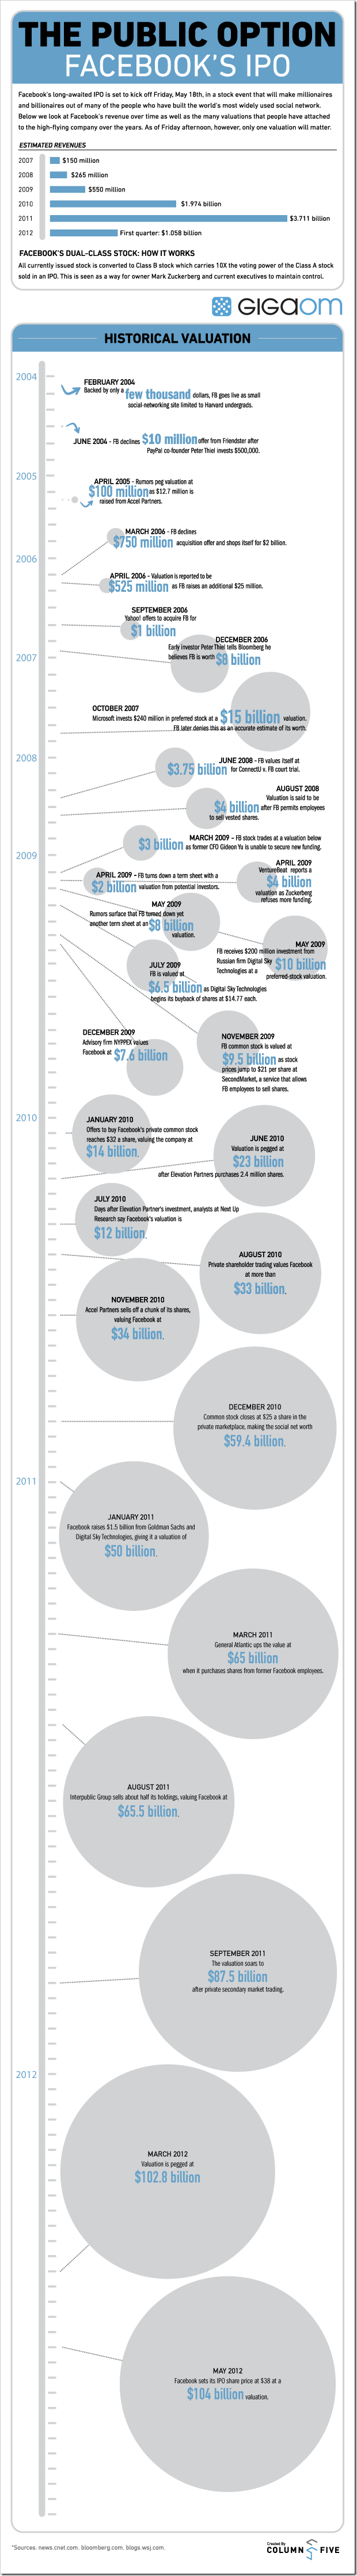 facebook_ipo_infographic